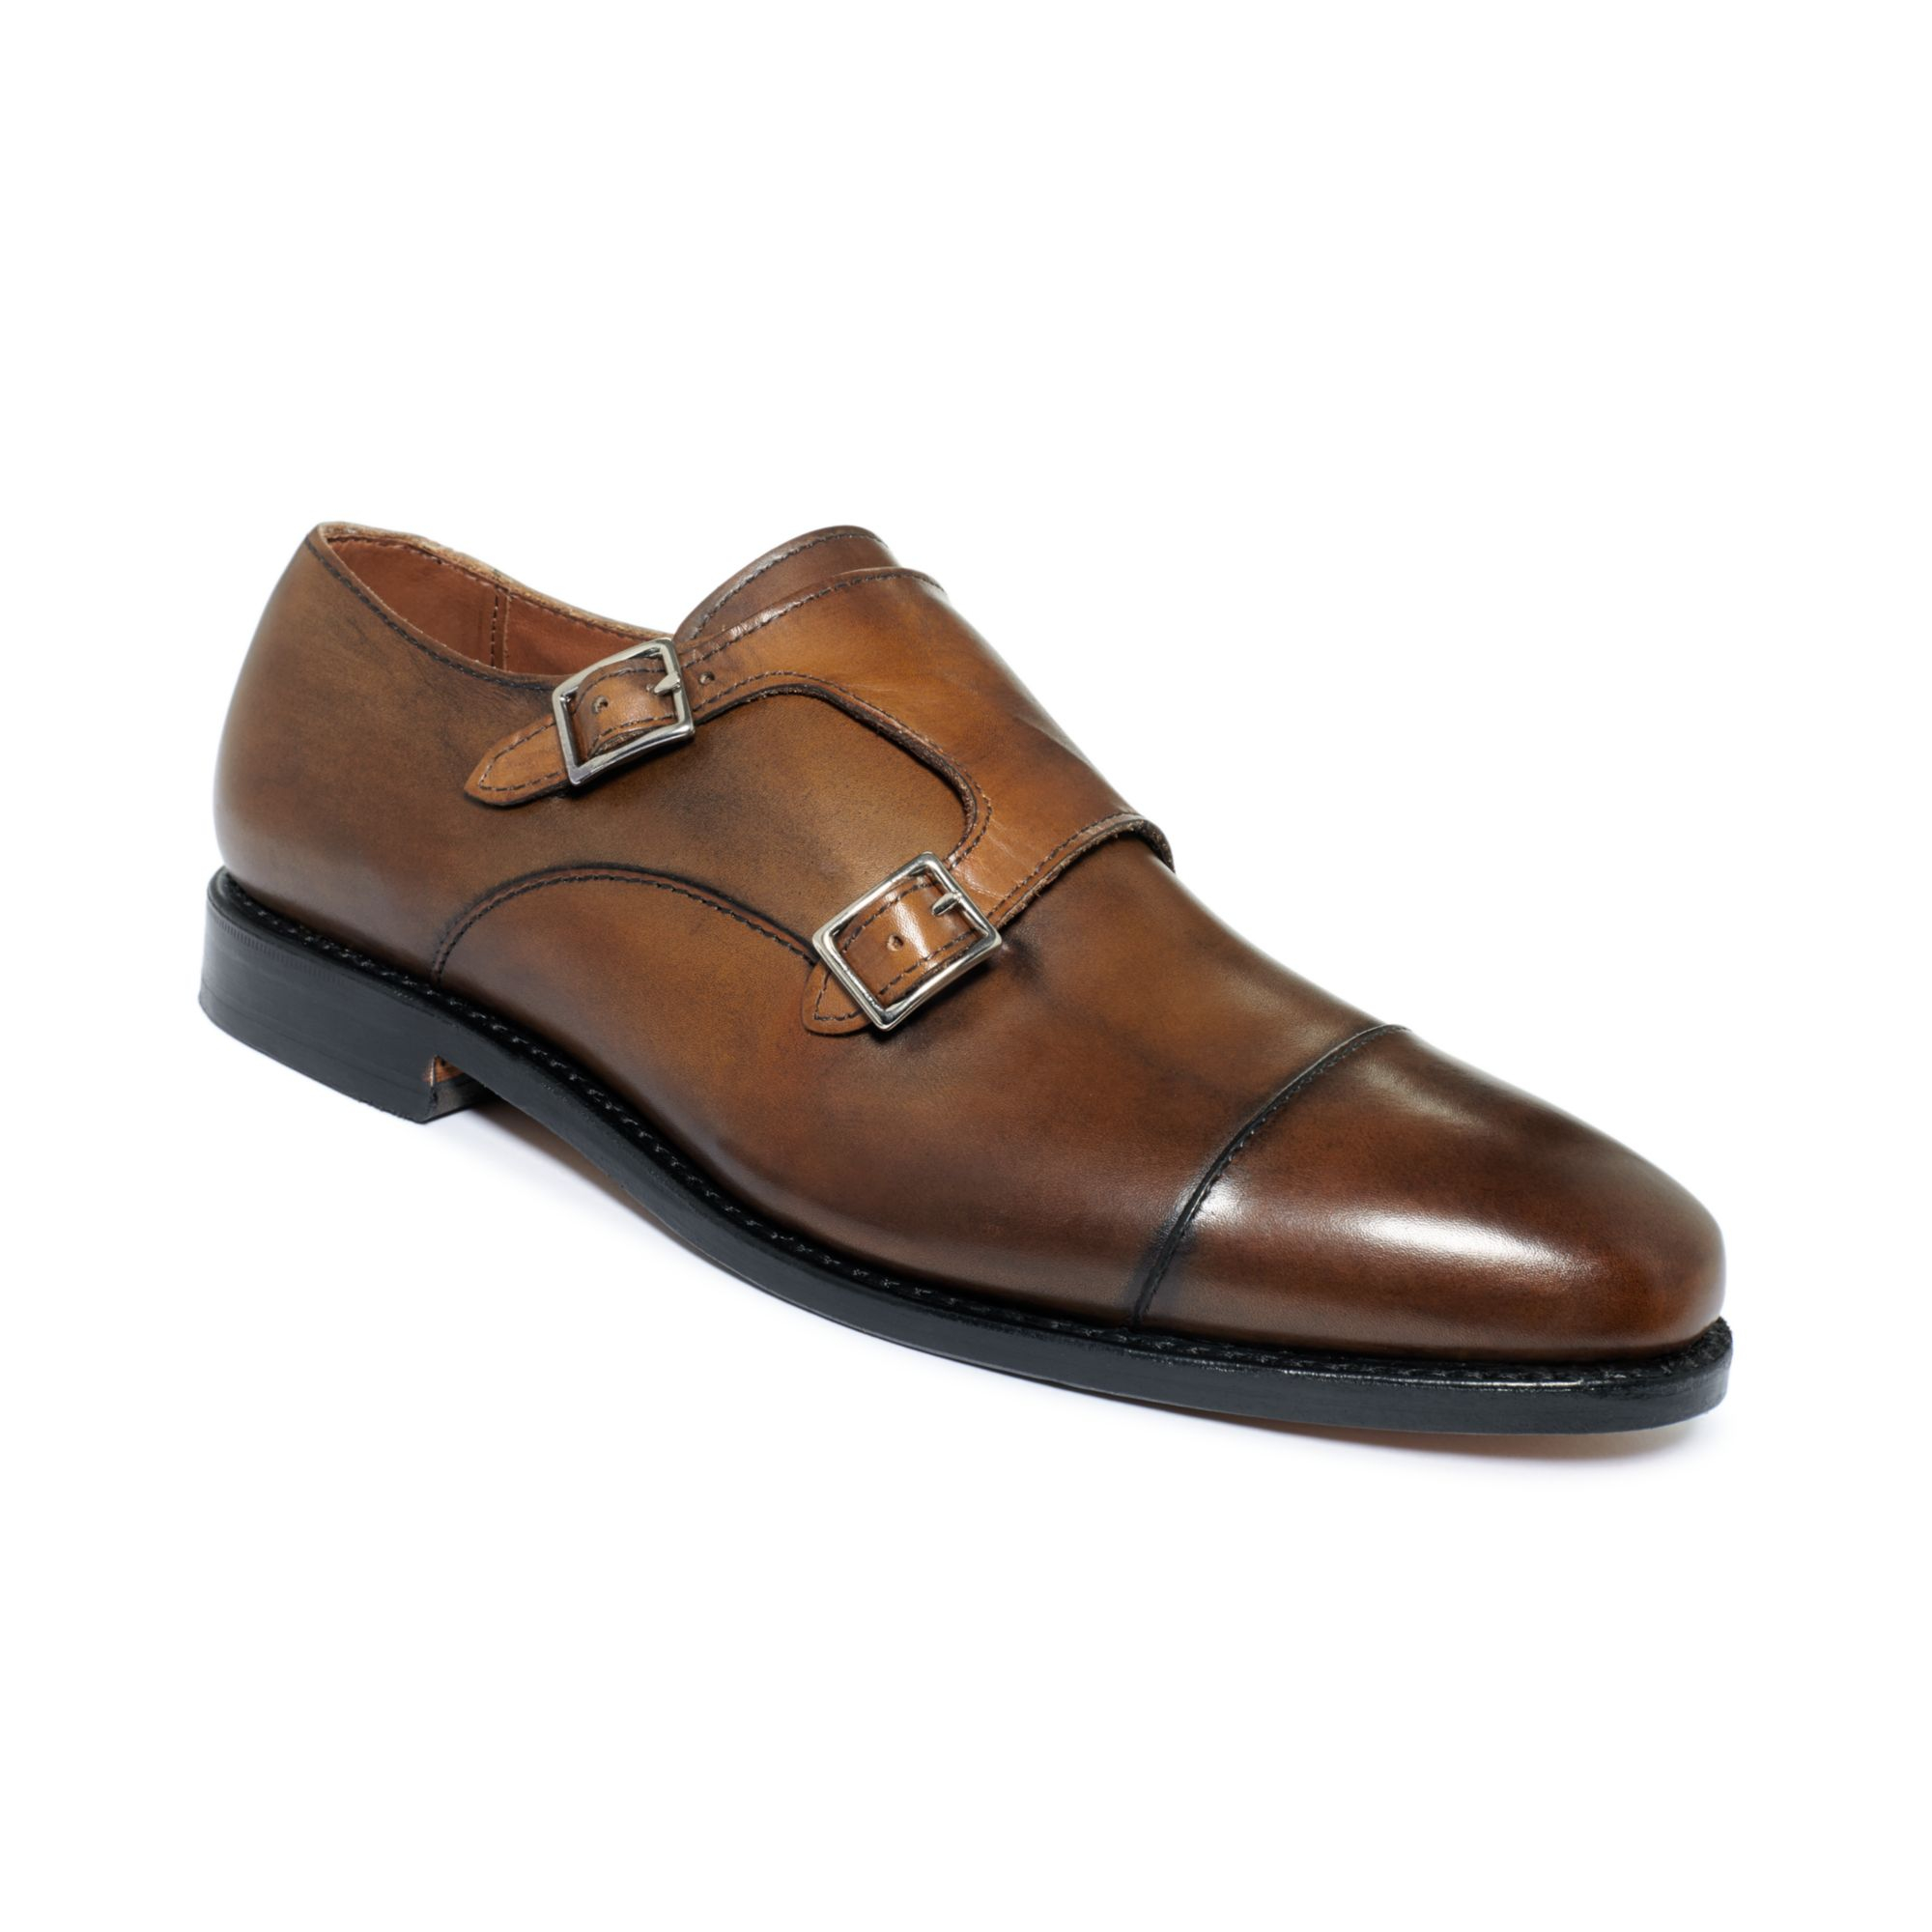 Men's Dress and Formal Shoes. The original pair of shoes is a pair of sagebrush bark sandals that is over 7, years old. While some guys love dress shoes to get dressed up for a night out on the town, others prefer to wear formal clothes and shoes only when absolutely necessary.